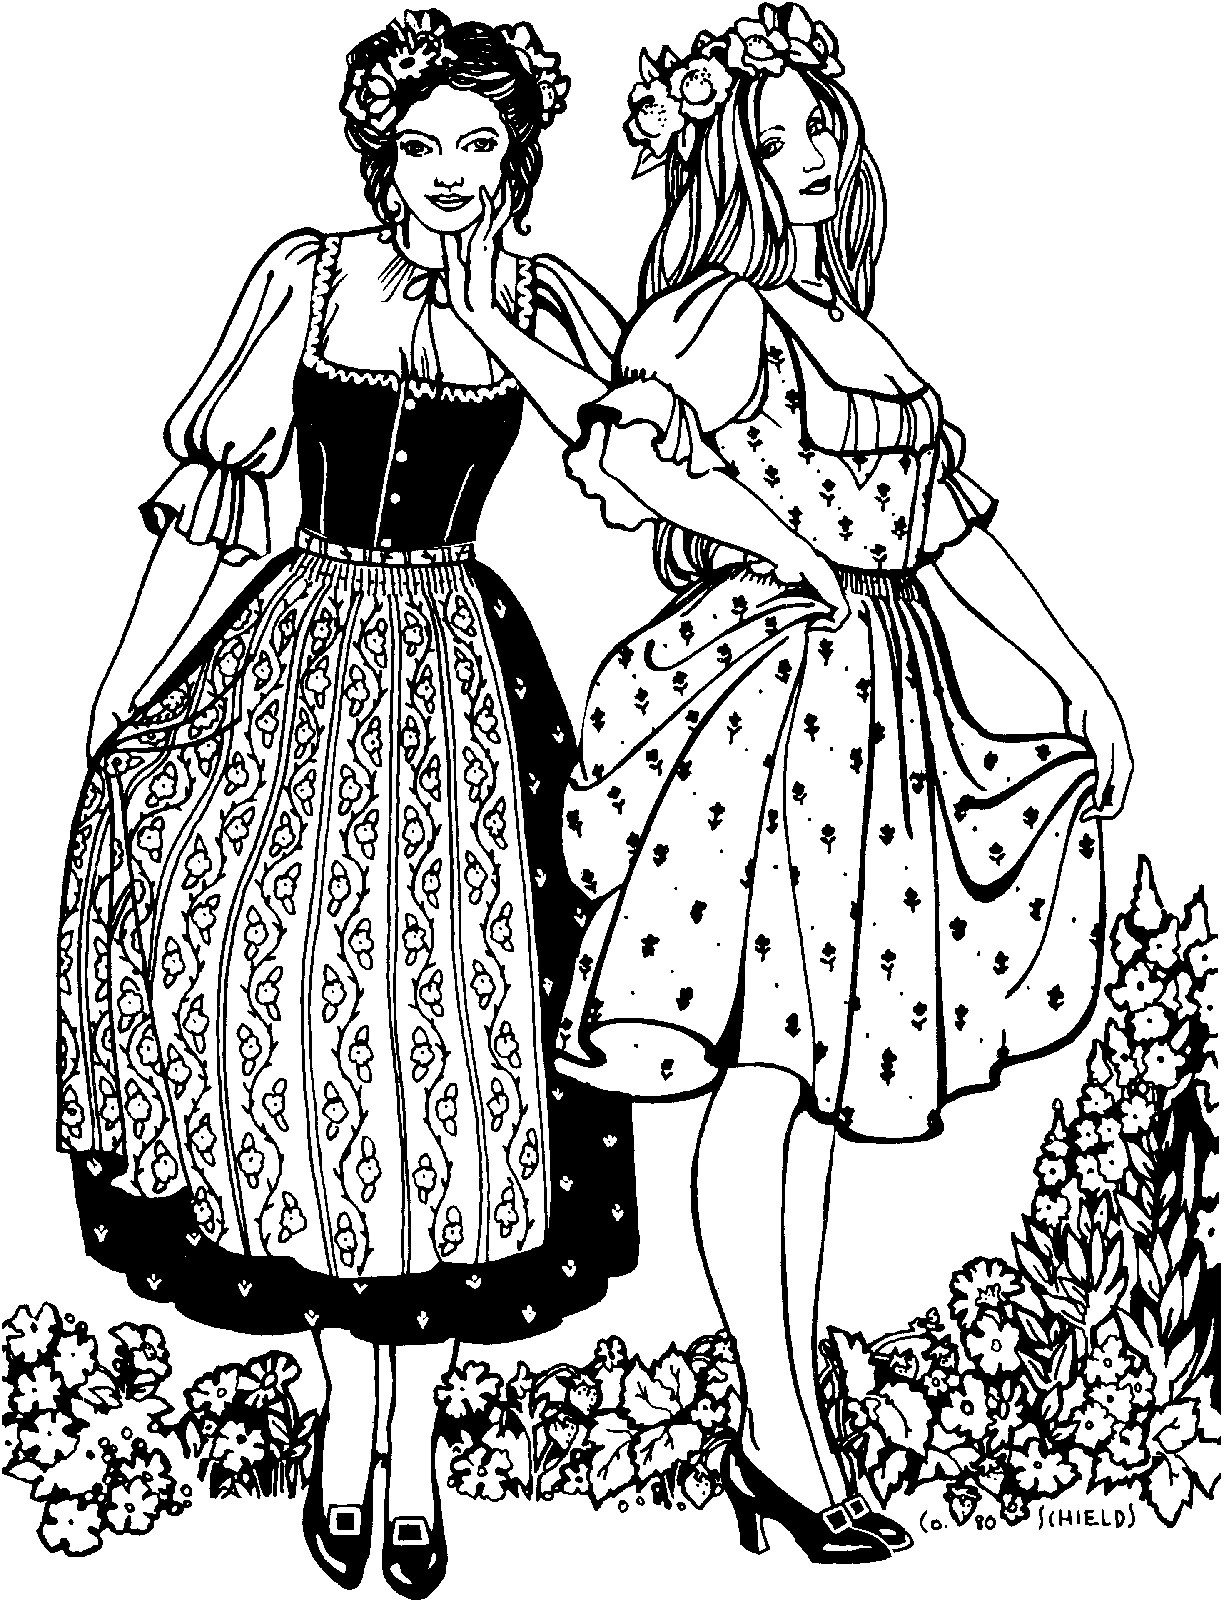 123 Austrian Dirndl Dirndl Vintage Sewing Patterns Dirndl Dress